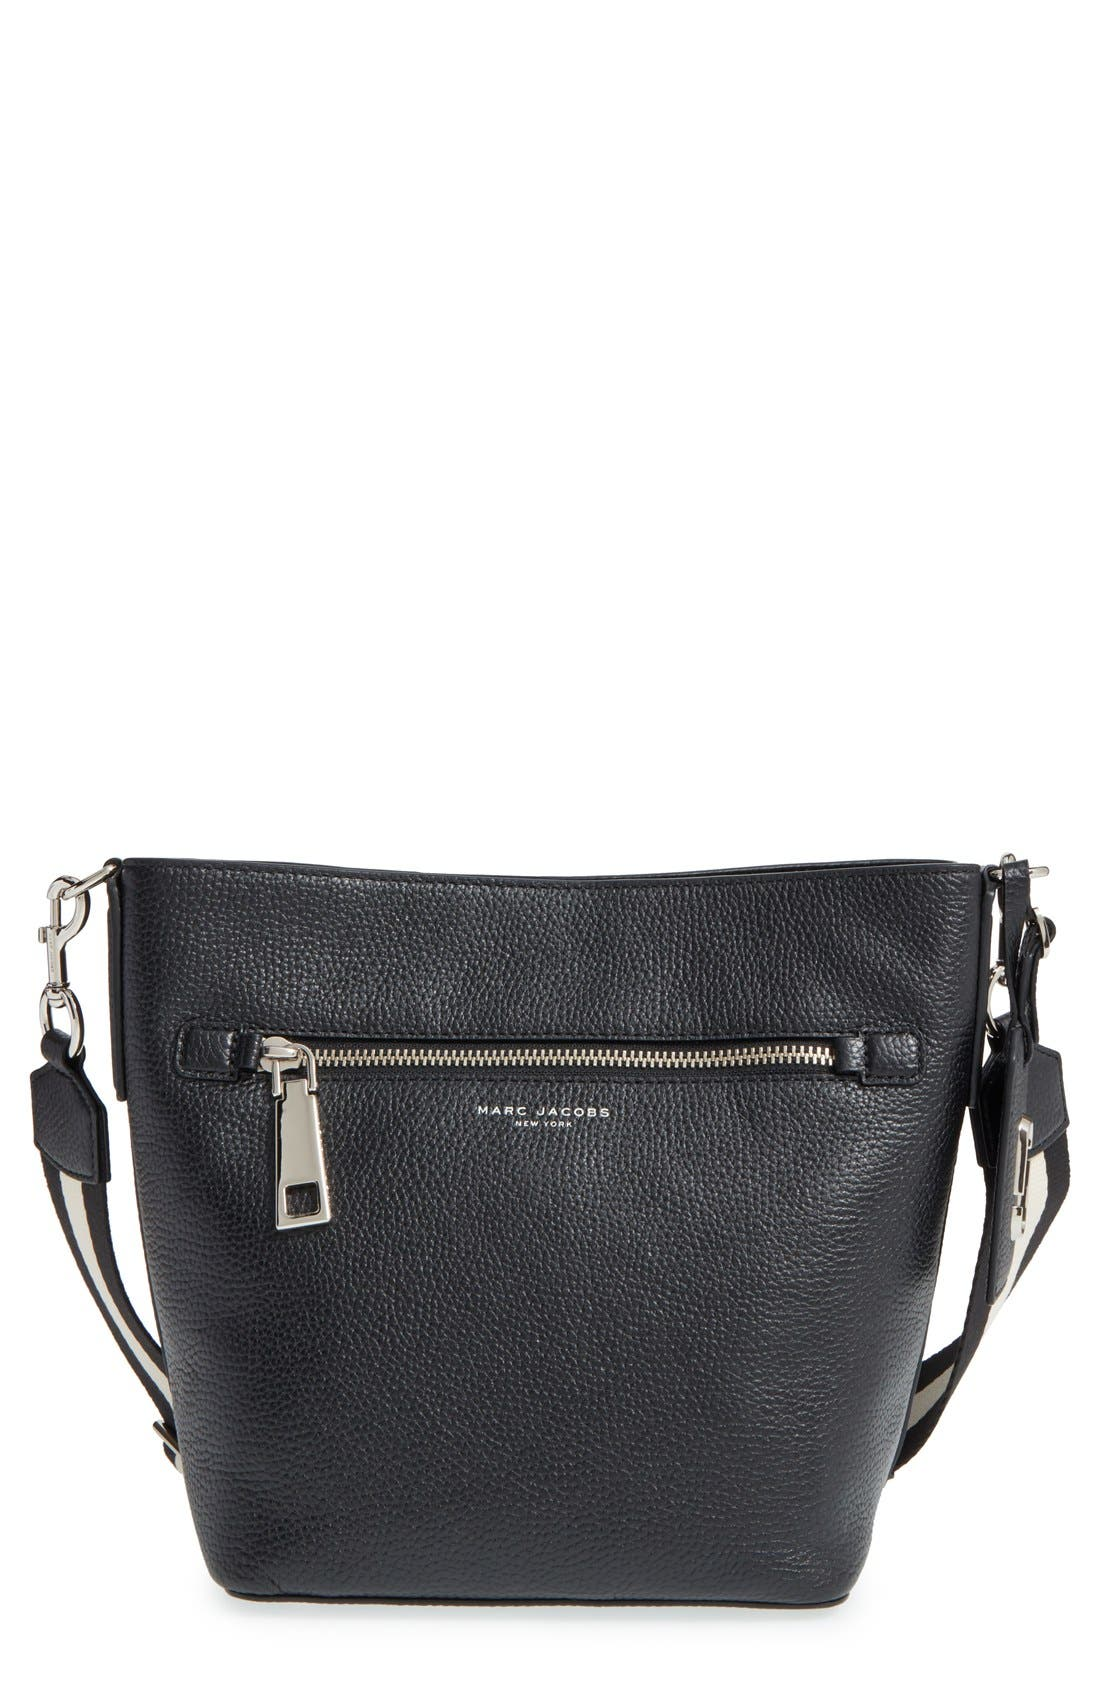 MARC JACOBS, 'Gotham' Leather Bucket Bag, Main thumbnail 1, color, 001